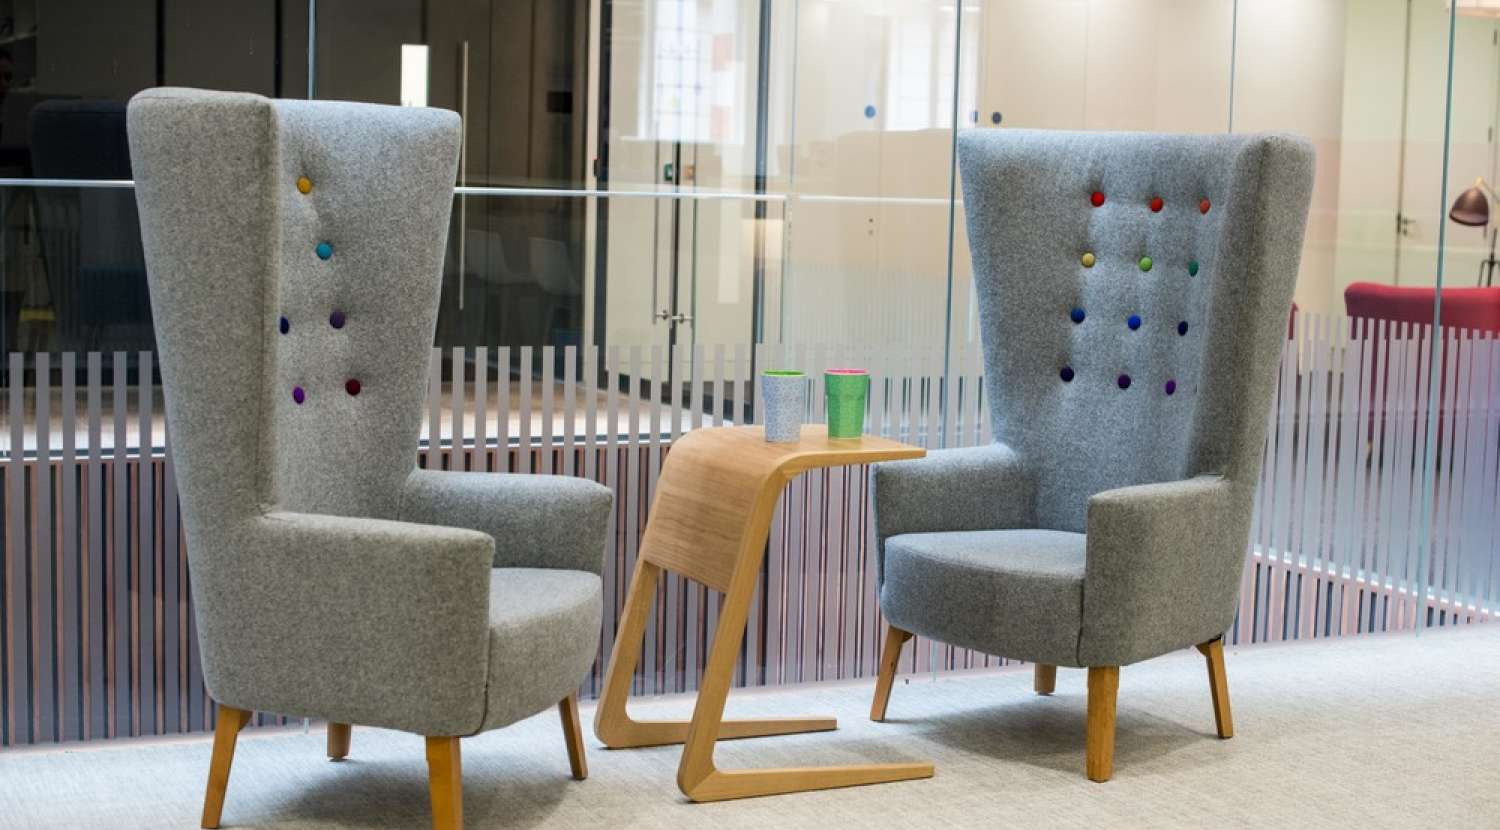 Colourful armchairs for impromptu meetings in modern london office fit out